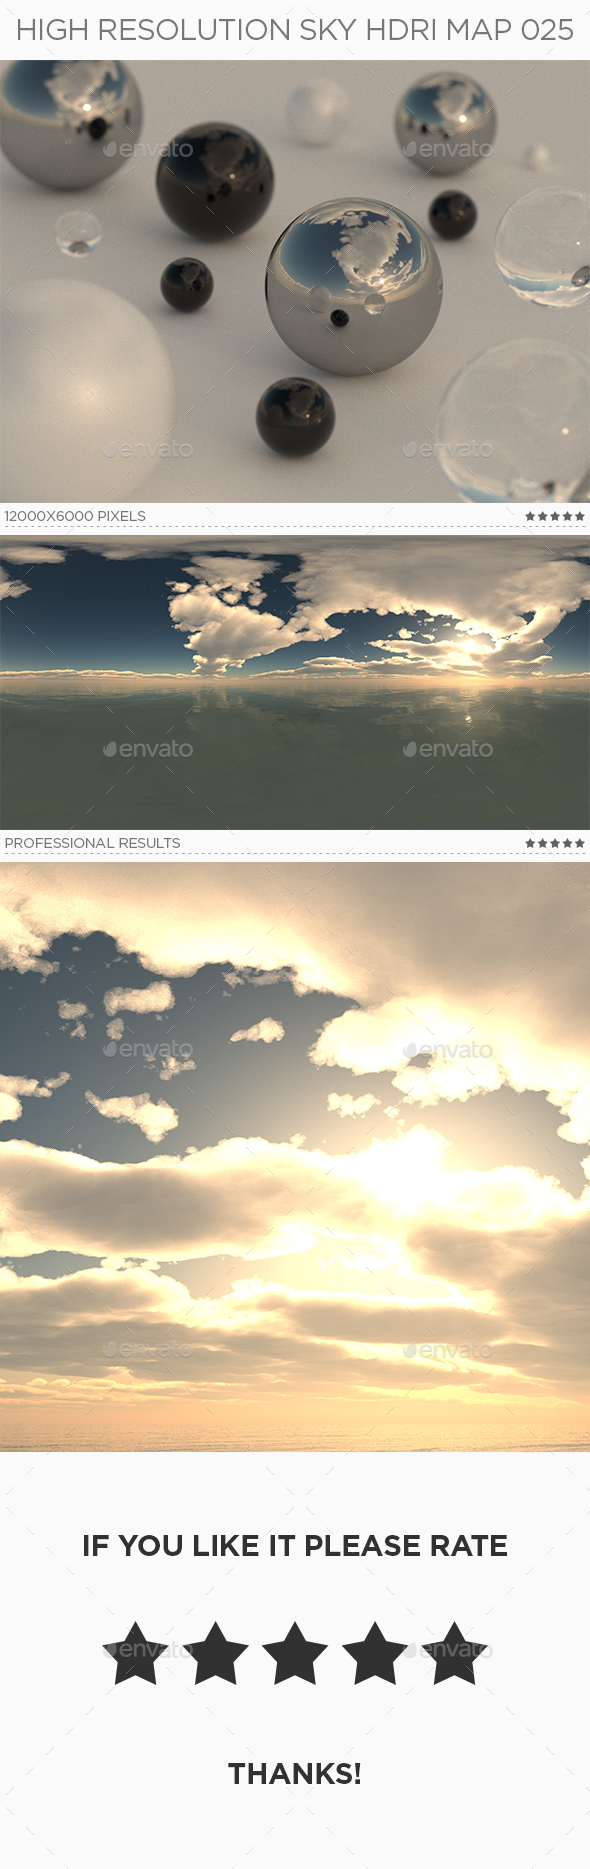 High Resolution Sky HDRi Map 025 - 3DOcean Item for Sale